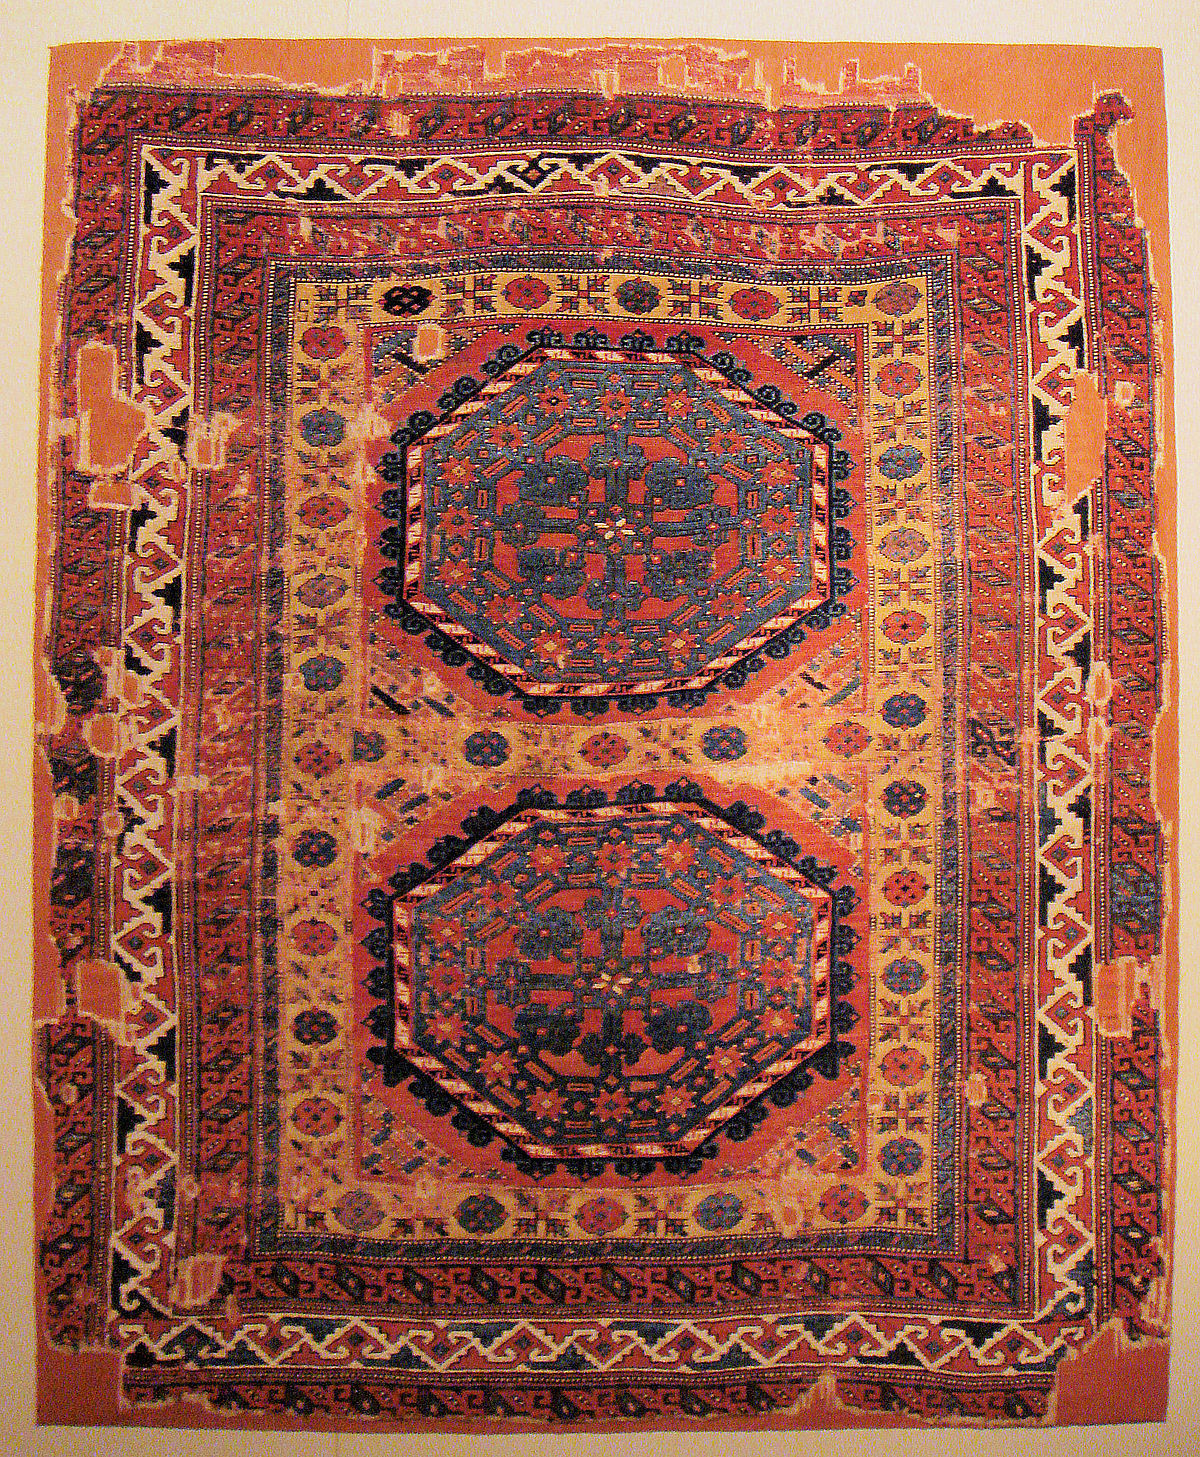 1200px-Holbein_carpet_with_large_medallions_16th_century_Central_Anatolia.jpg